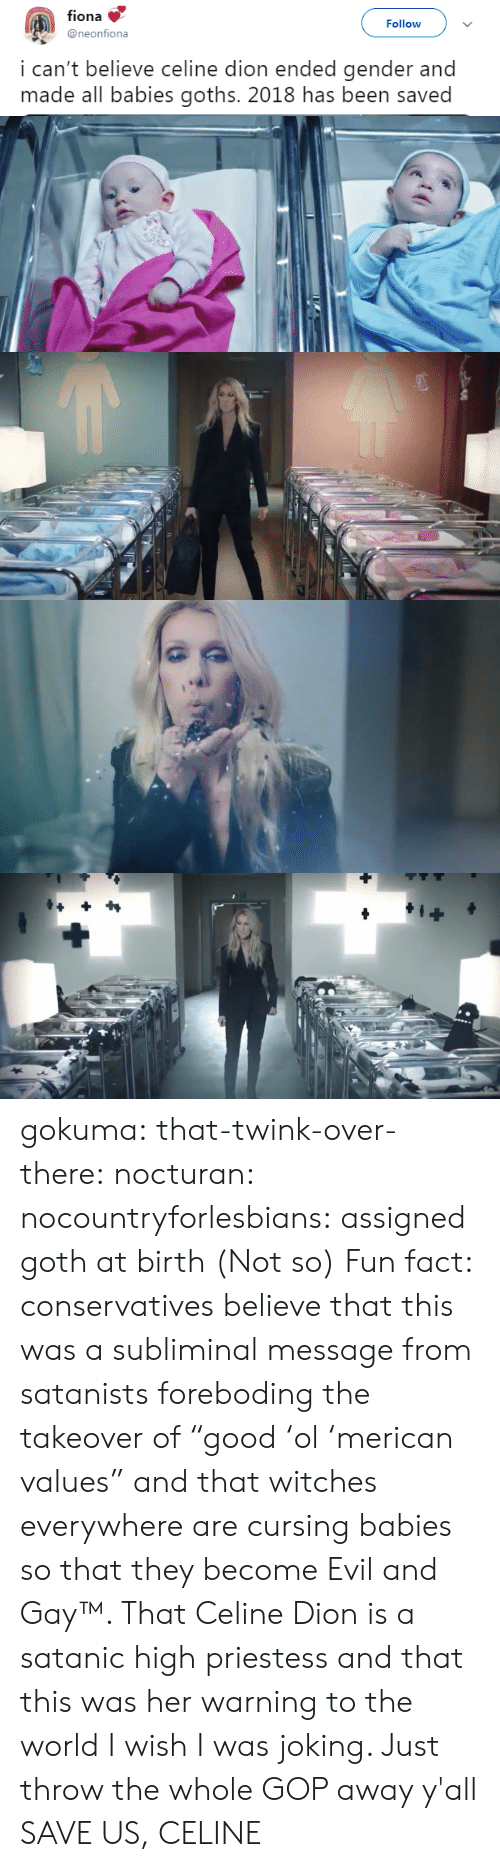 "Tumblr, Blog, and Http: fiona  @neonfiona  Followv  i can't believe celine dion ended gender and  made all babies goths. 2018 has been saved gokuma: that-twink-over-there:  nocturan:  nocountryforlesbians: assigned goth at birth  (Not so) Fun fact: conservatives believe that this was a subliminal message from satanists foreboding the takeover of ""good 'ol 'merican values"" and that witches everywhere are cursing babies so that they become Evil and Gay™. That Celine Dion is a satanic high priestess and that this was her warning to the world  I wish I was joking. Just throw the whole GOP away y'all    SAVE US, CELINE"